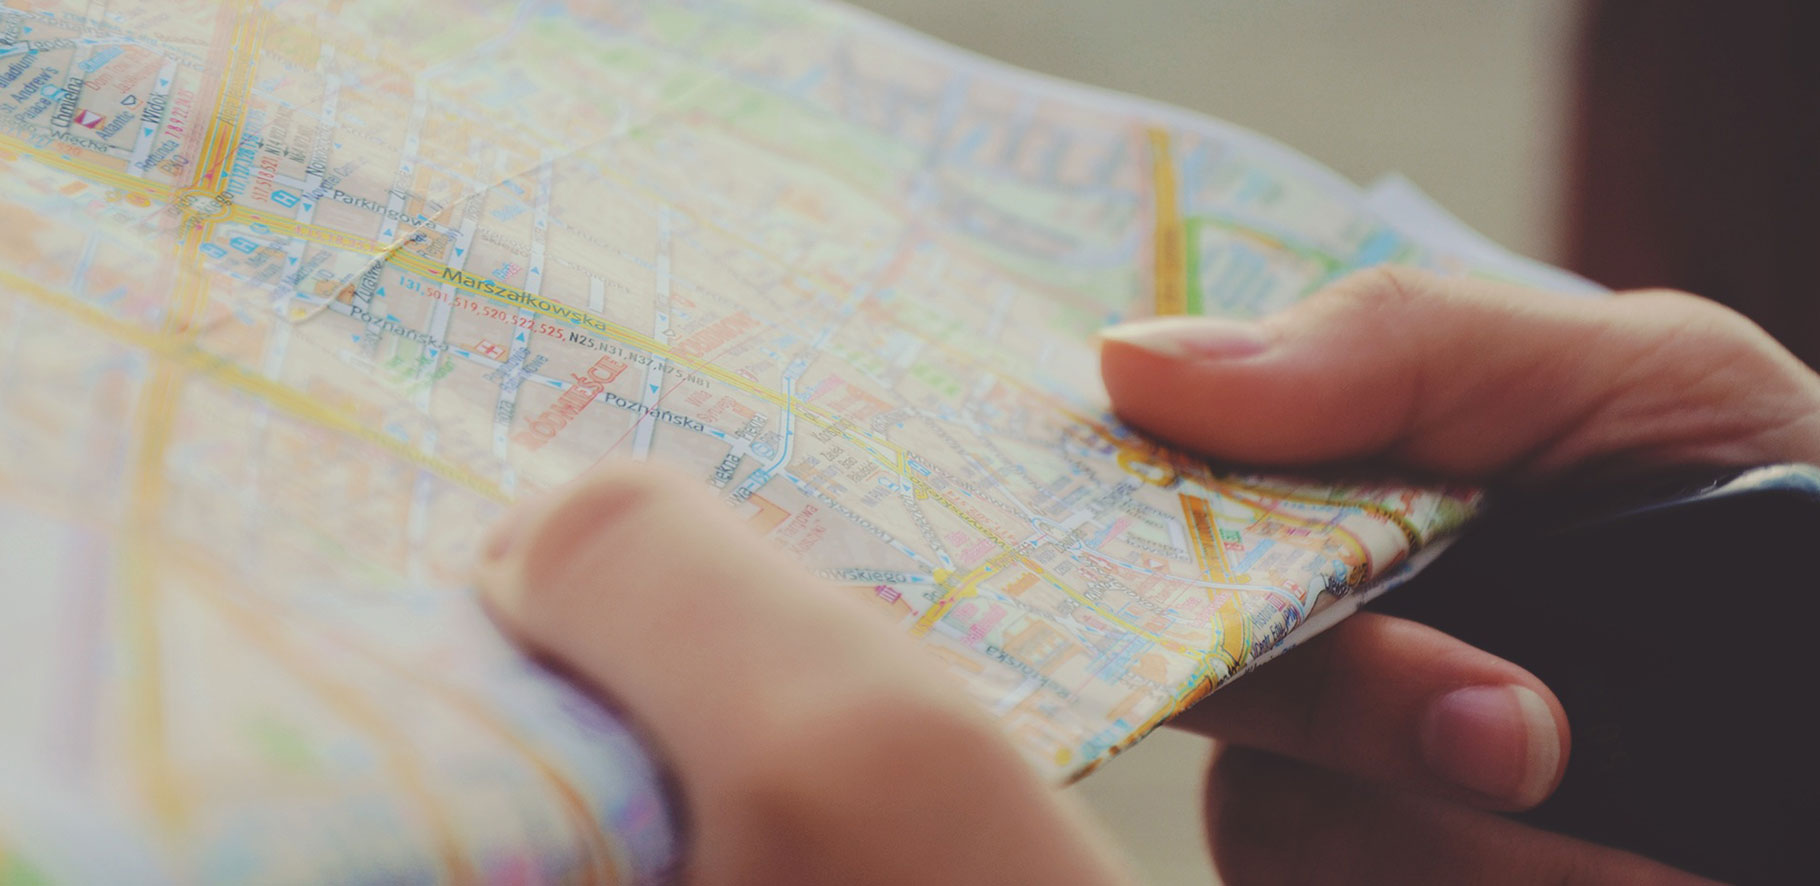 close up of a person holding a street map